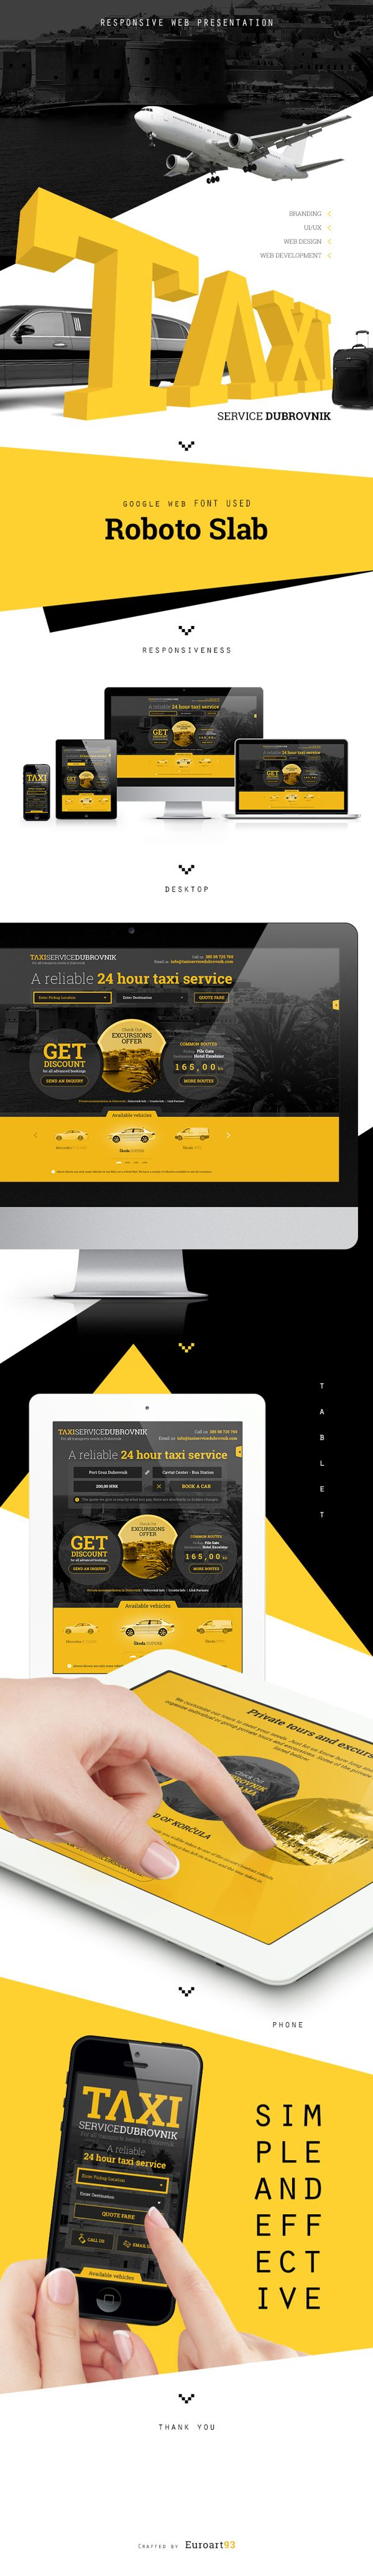 Taxi service Dubrovnik website by Jurica Vukovich